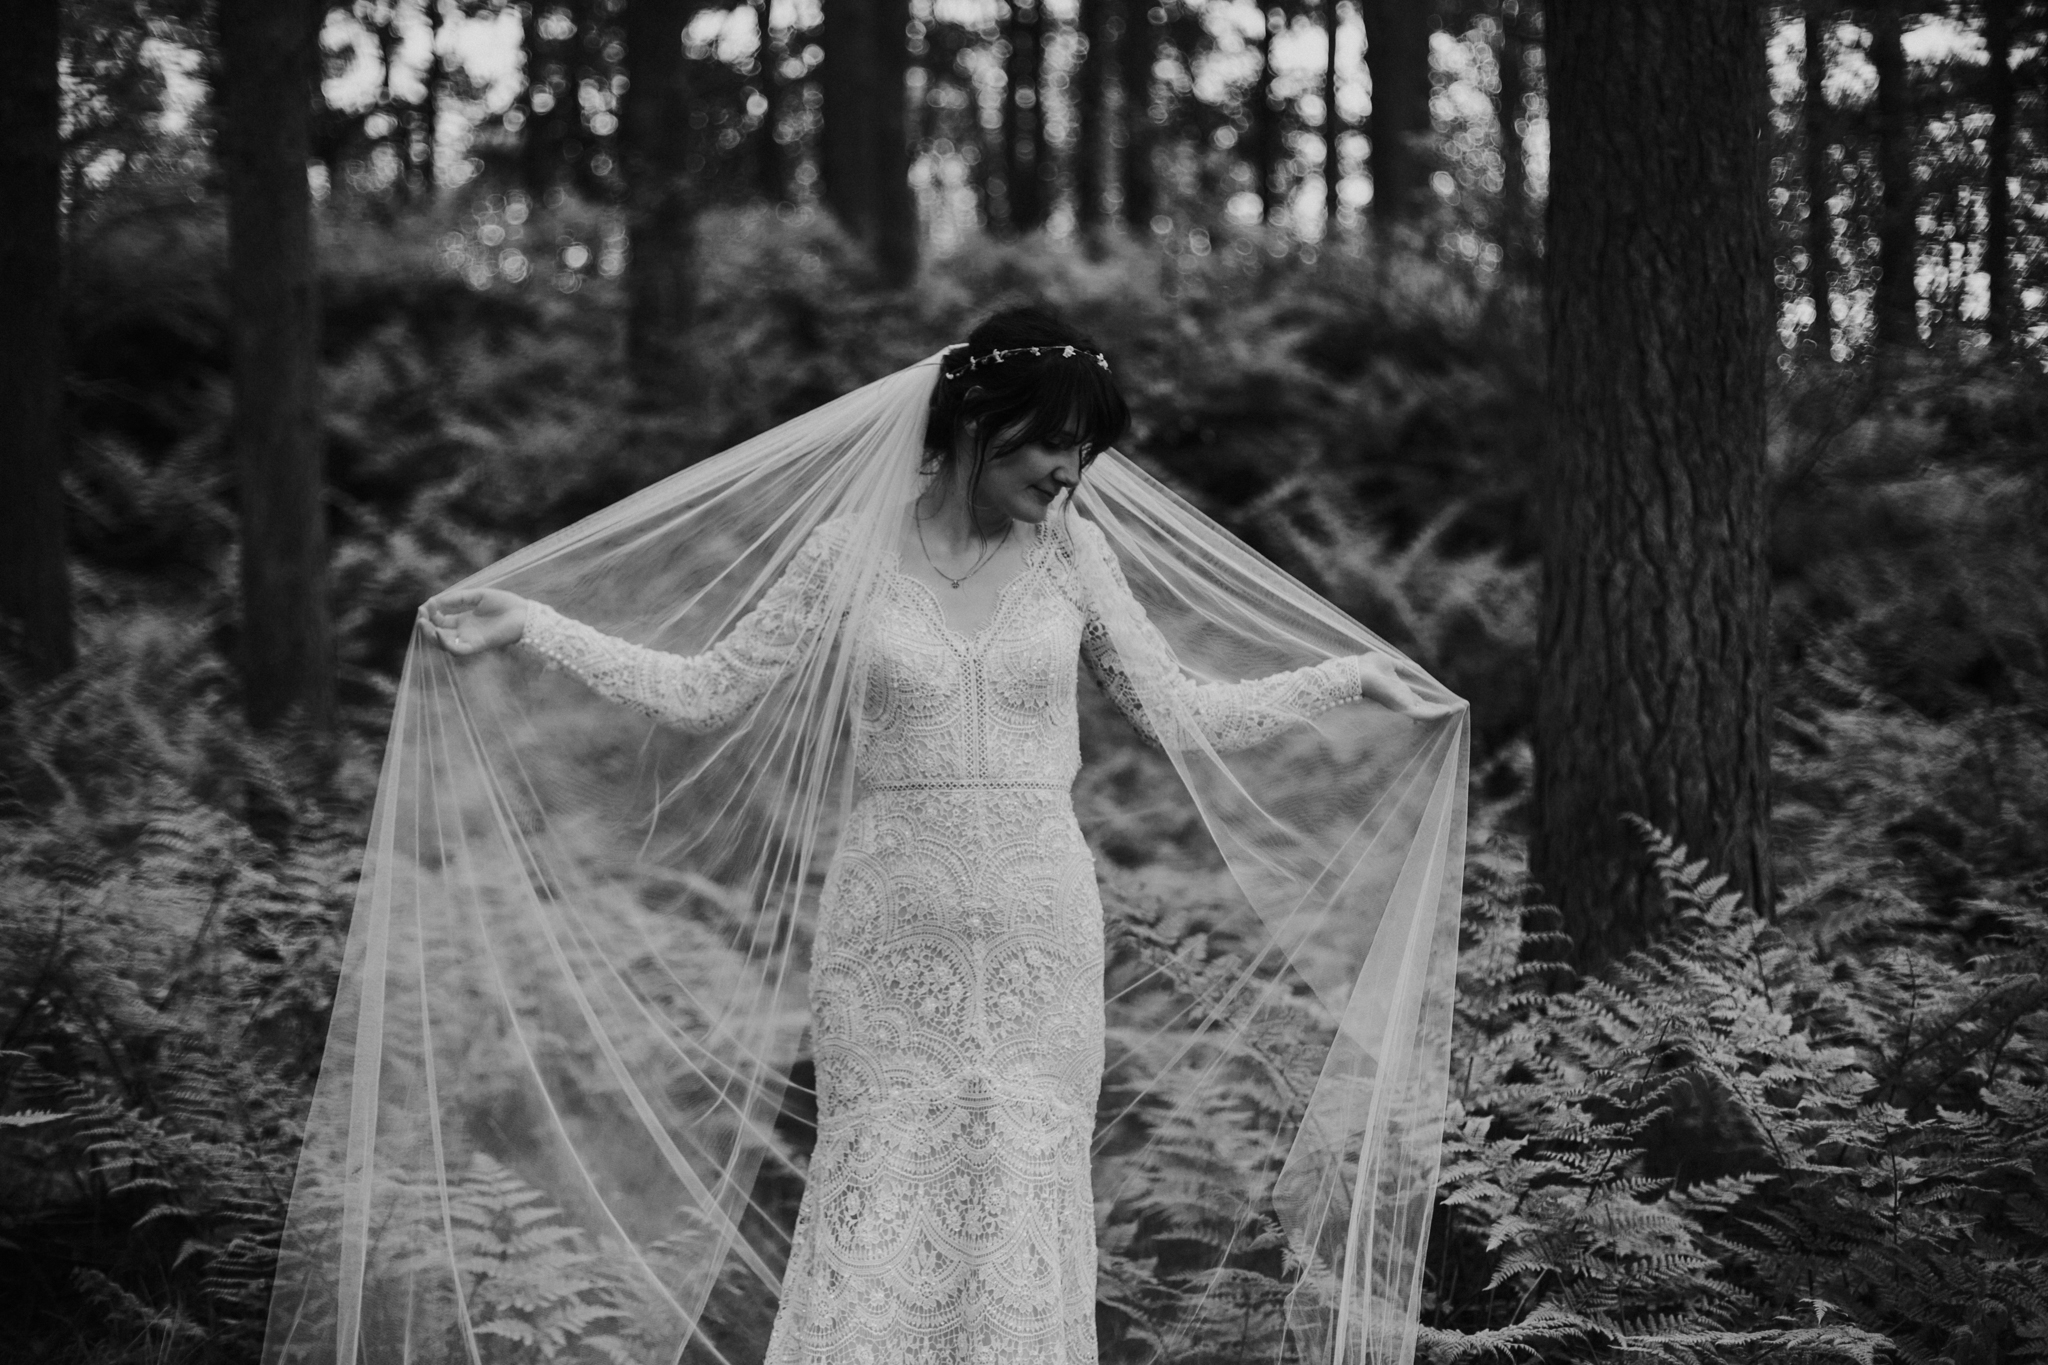 The creative shot of the bride in the wild forest